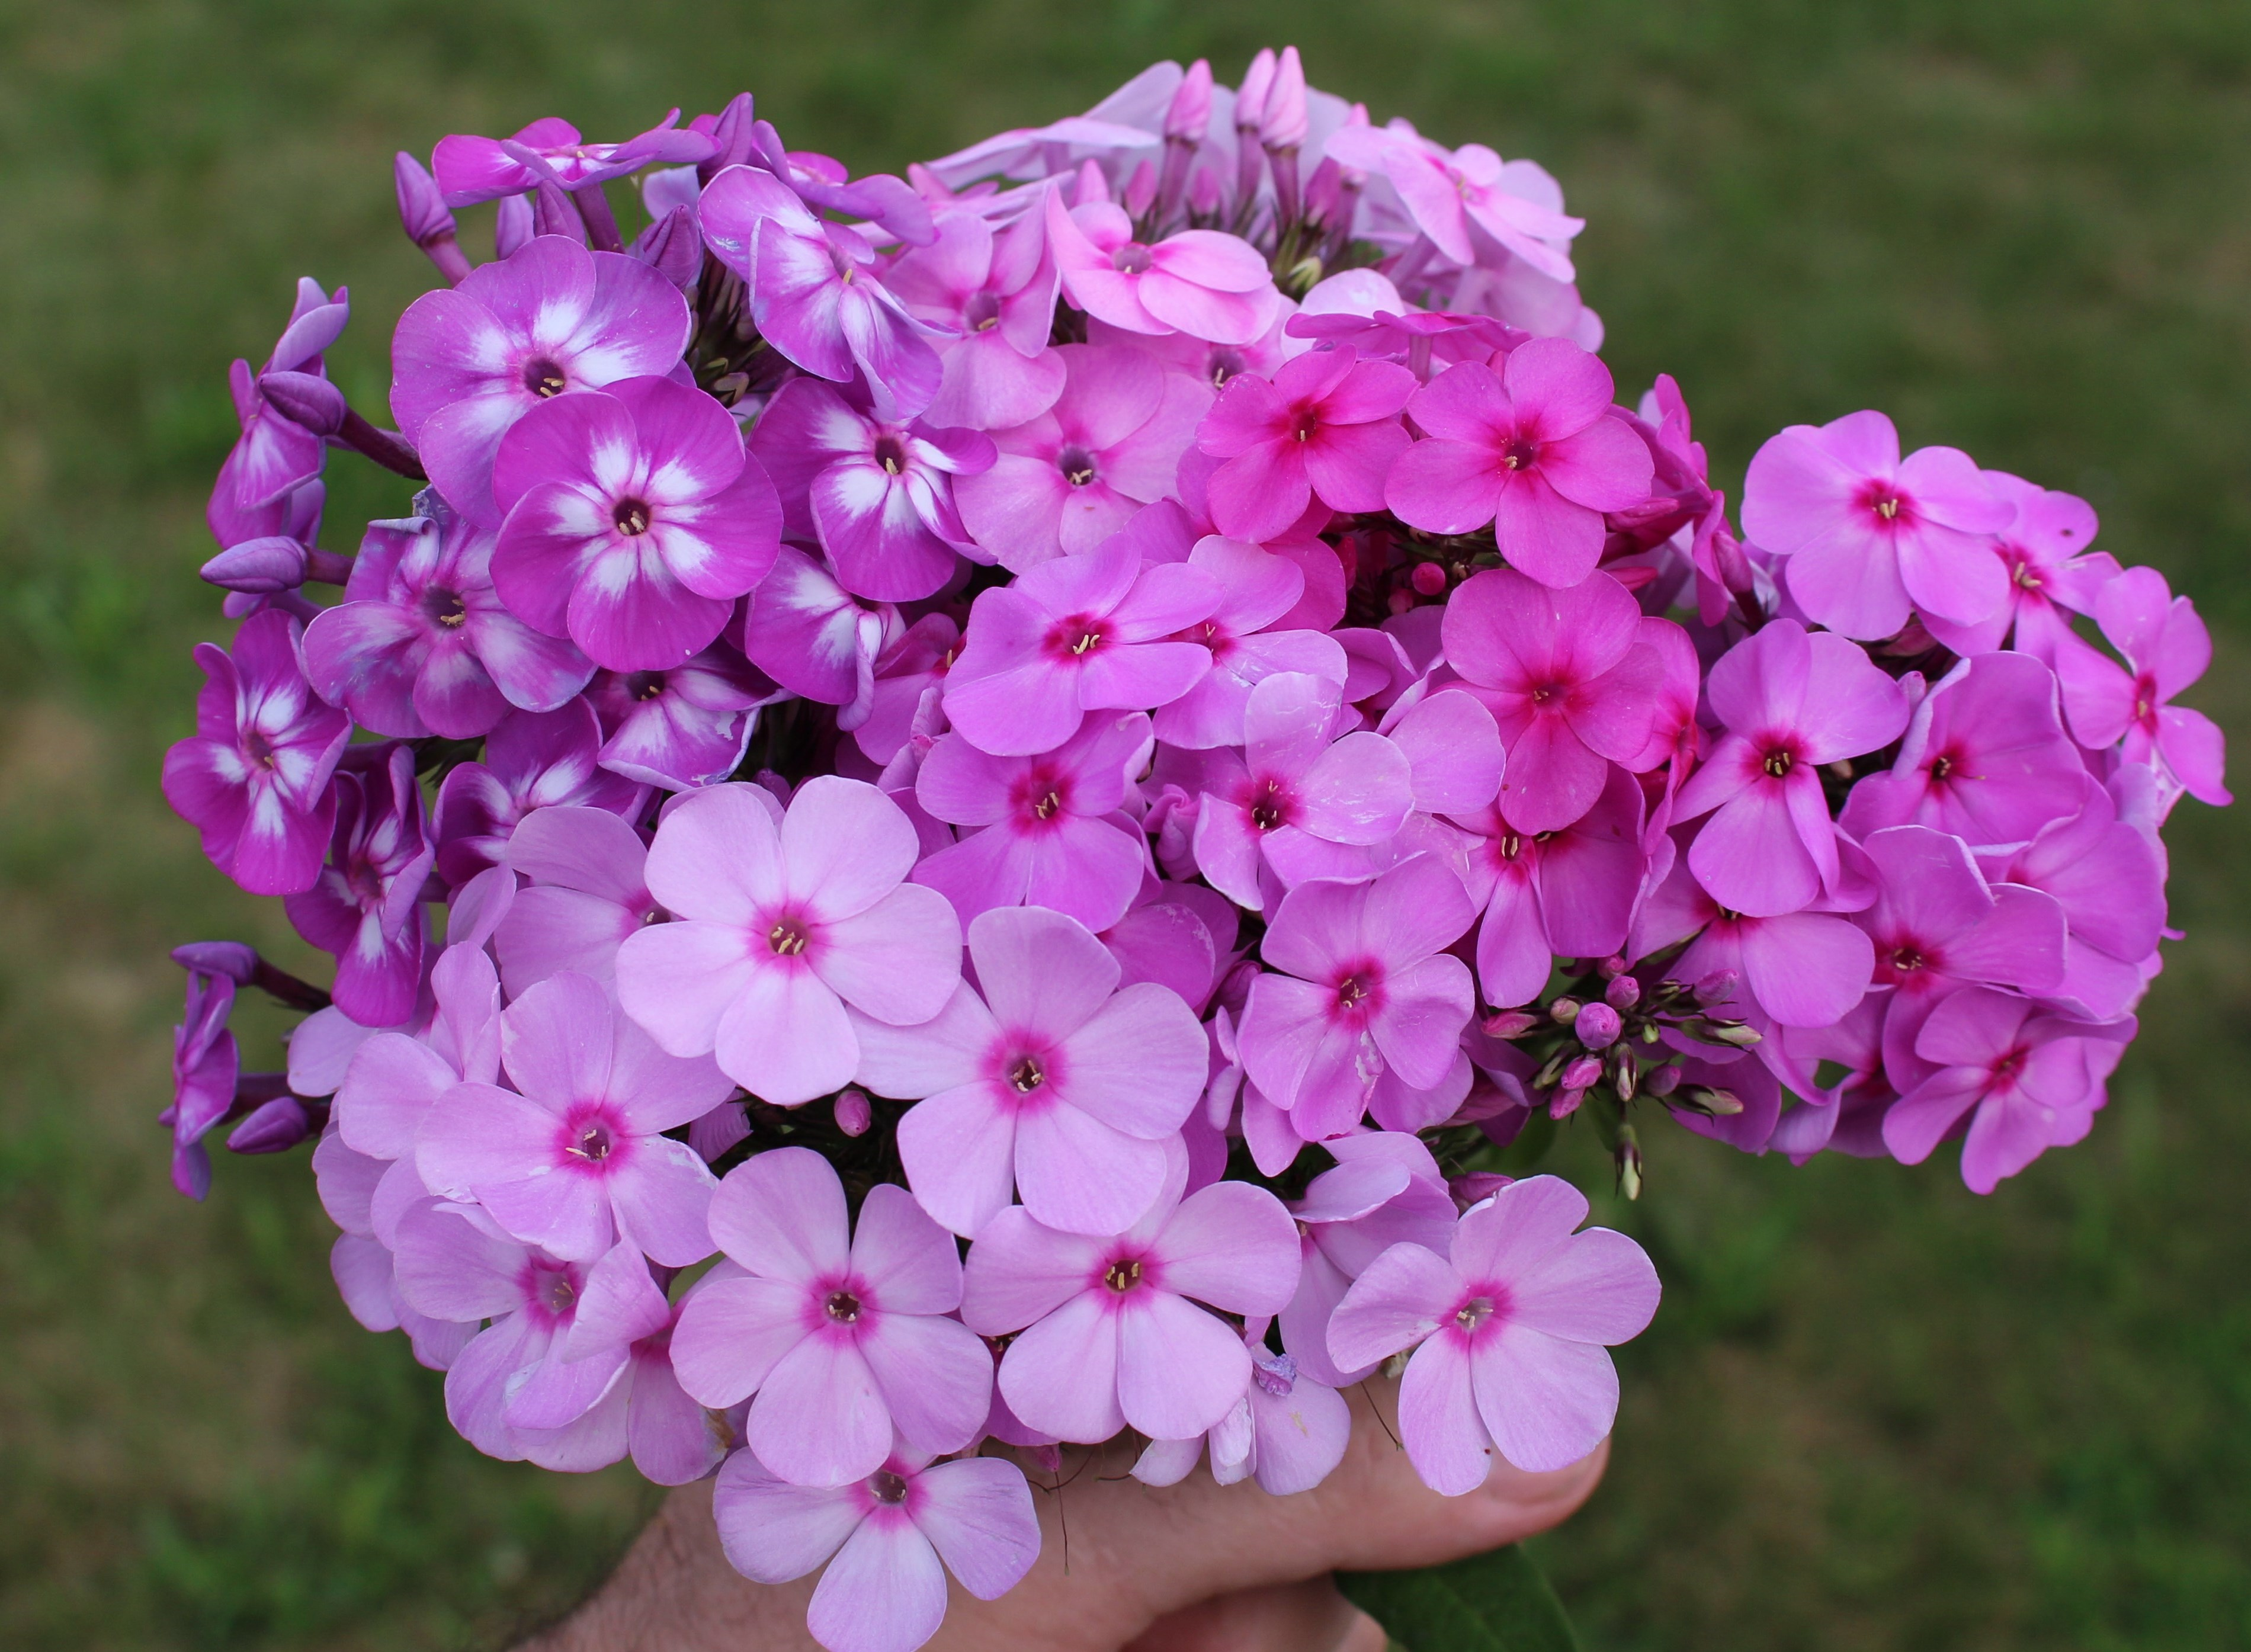 cut these perennials summer we flare neon of pin offers blue and with tall easy sale care flowers longfield mid love in gardens good for butterflies sensational plants garden hardy to are phlox bloom the late shades